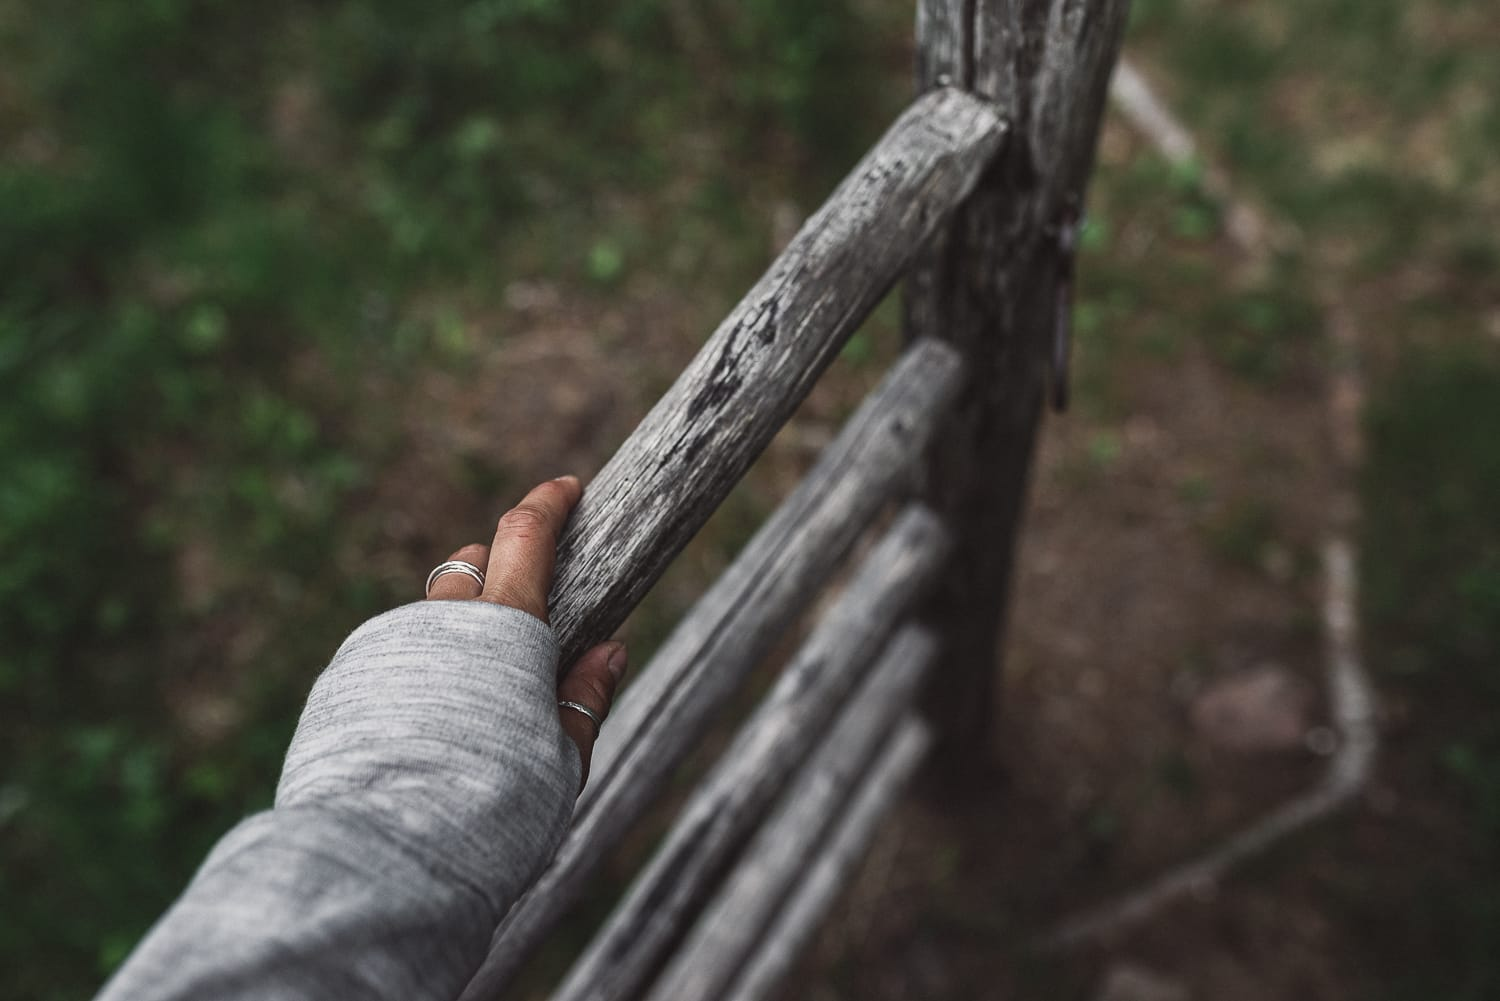 hand opening an old wooden gate